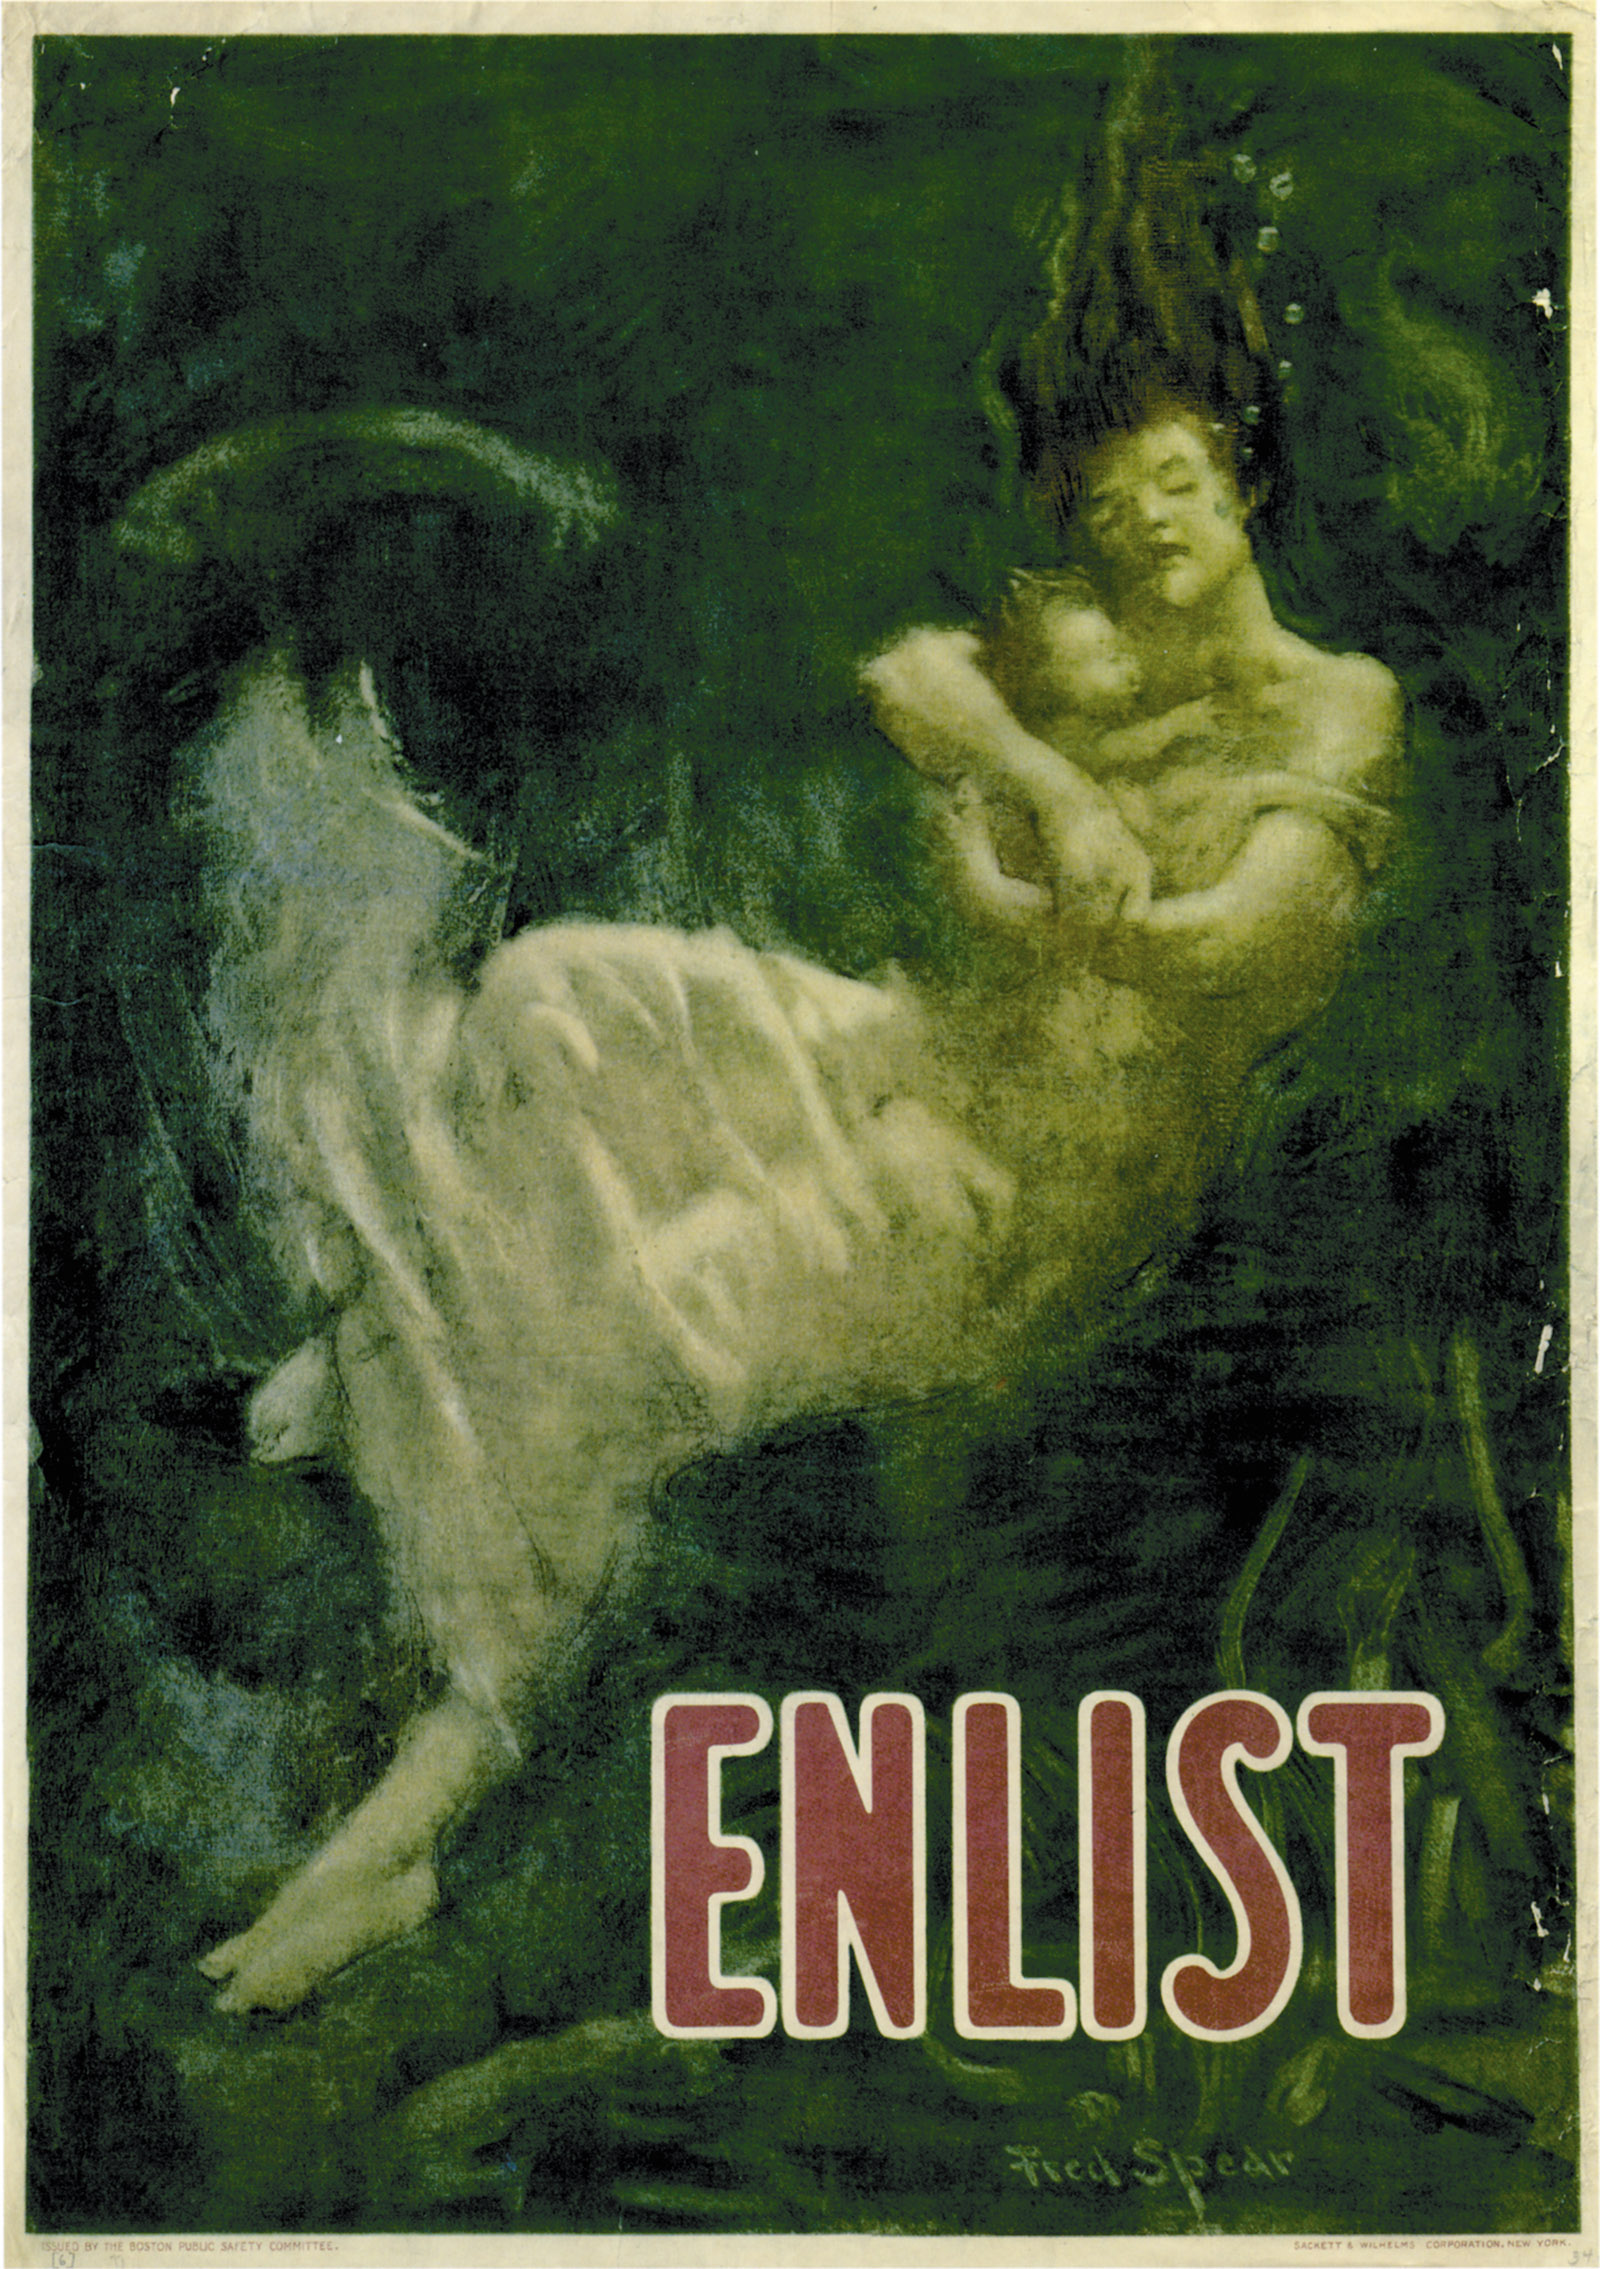 'Enlist'; poster by Fred Spear, 1915. 'The unspoken reference,' James Fenton writes, 'is to the sinking of the <i>Lusitania</i>, an event that made it hard for America to stay out of the war.'